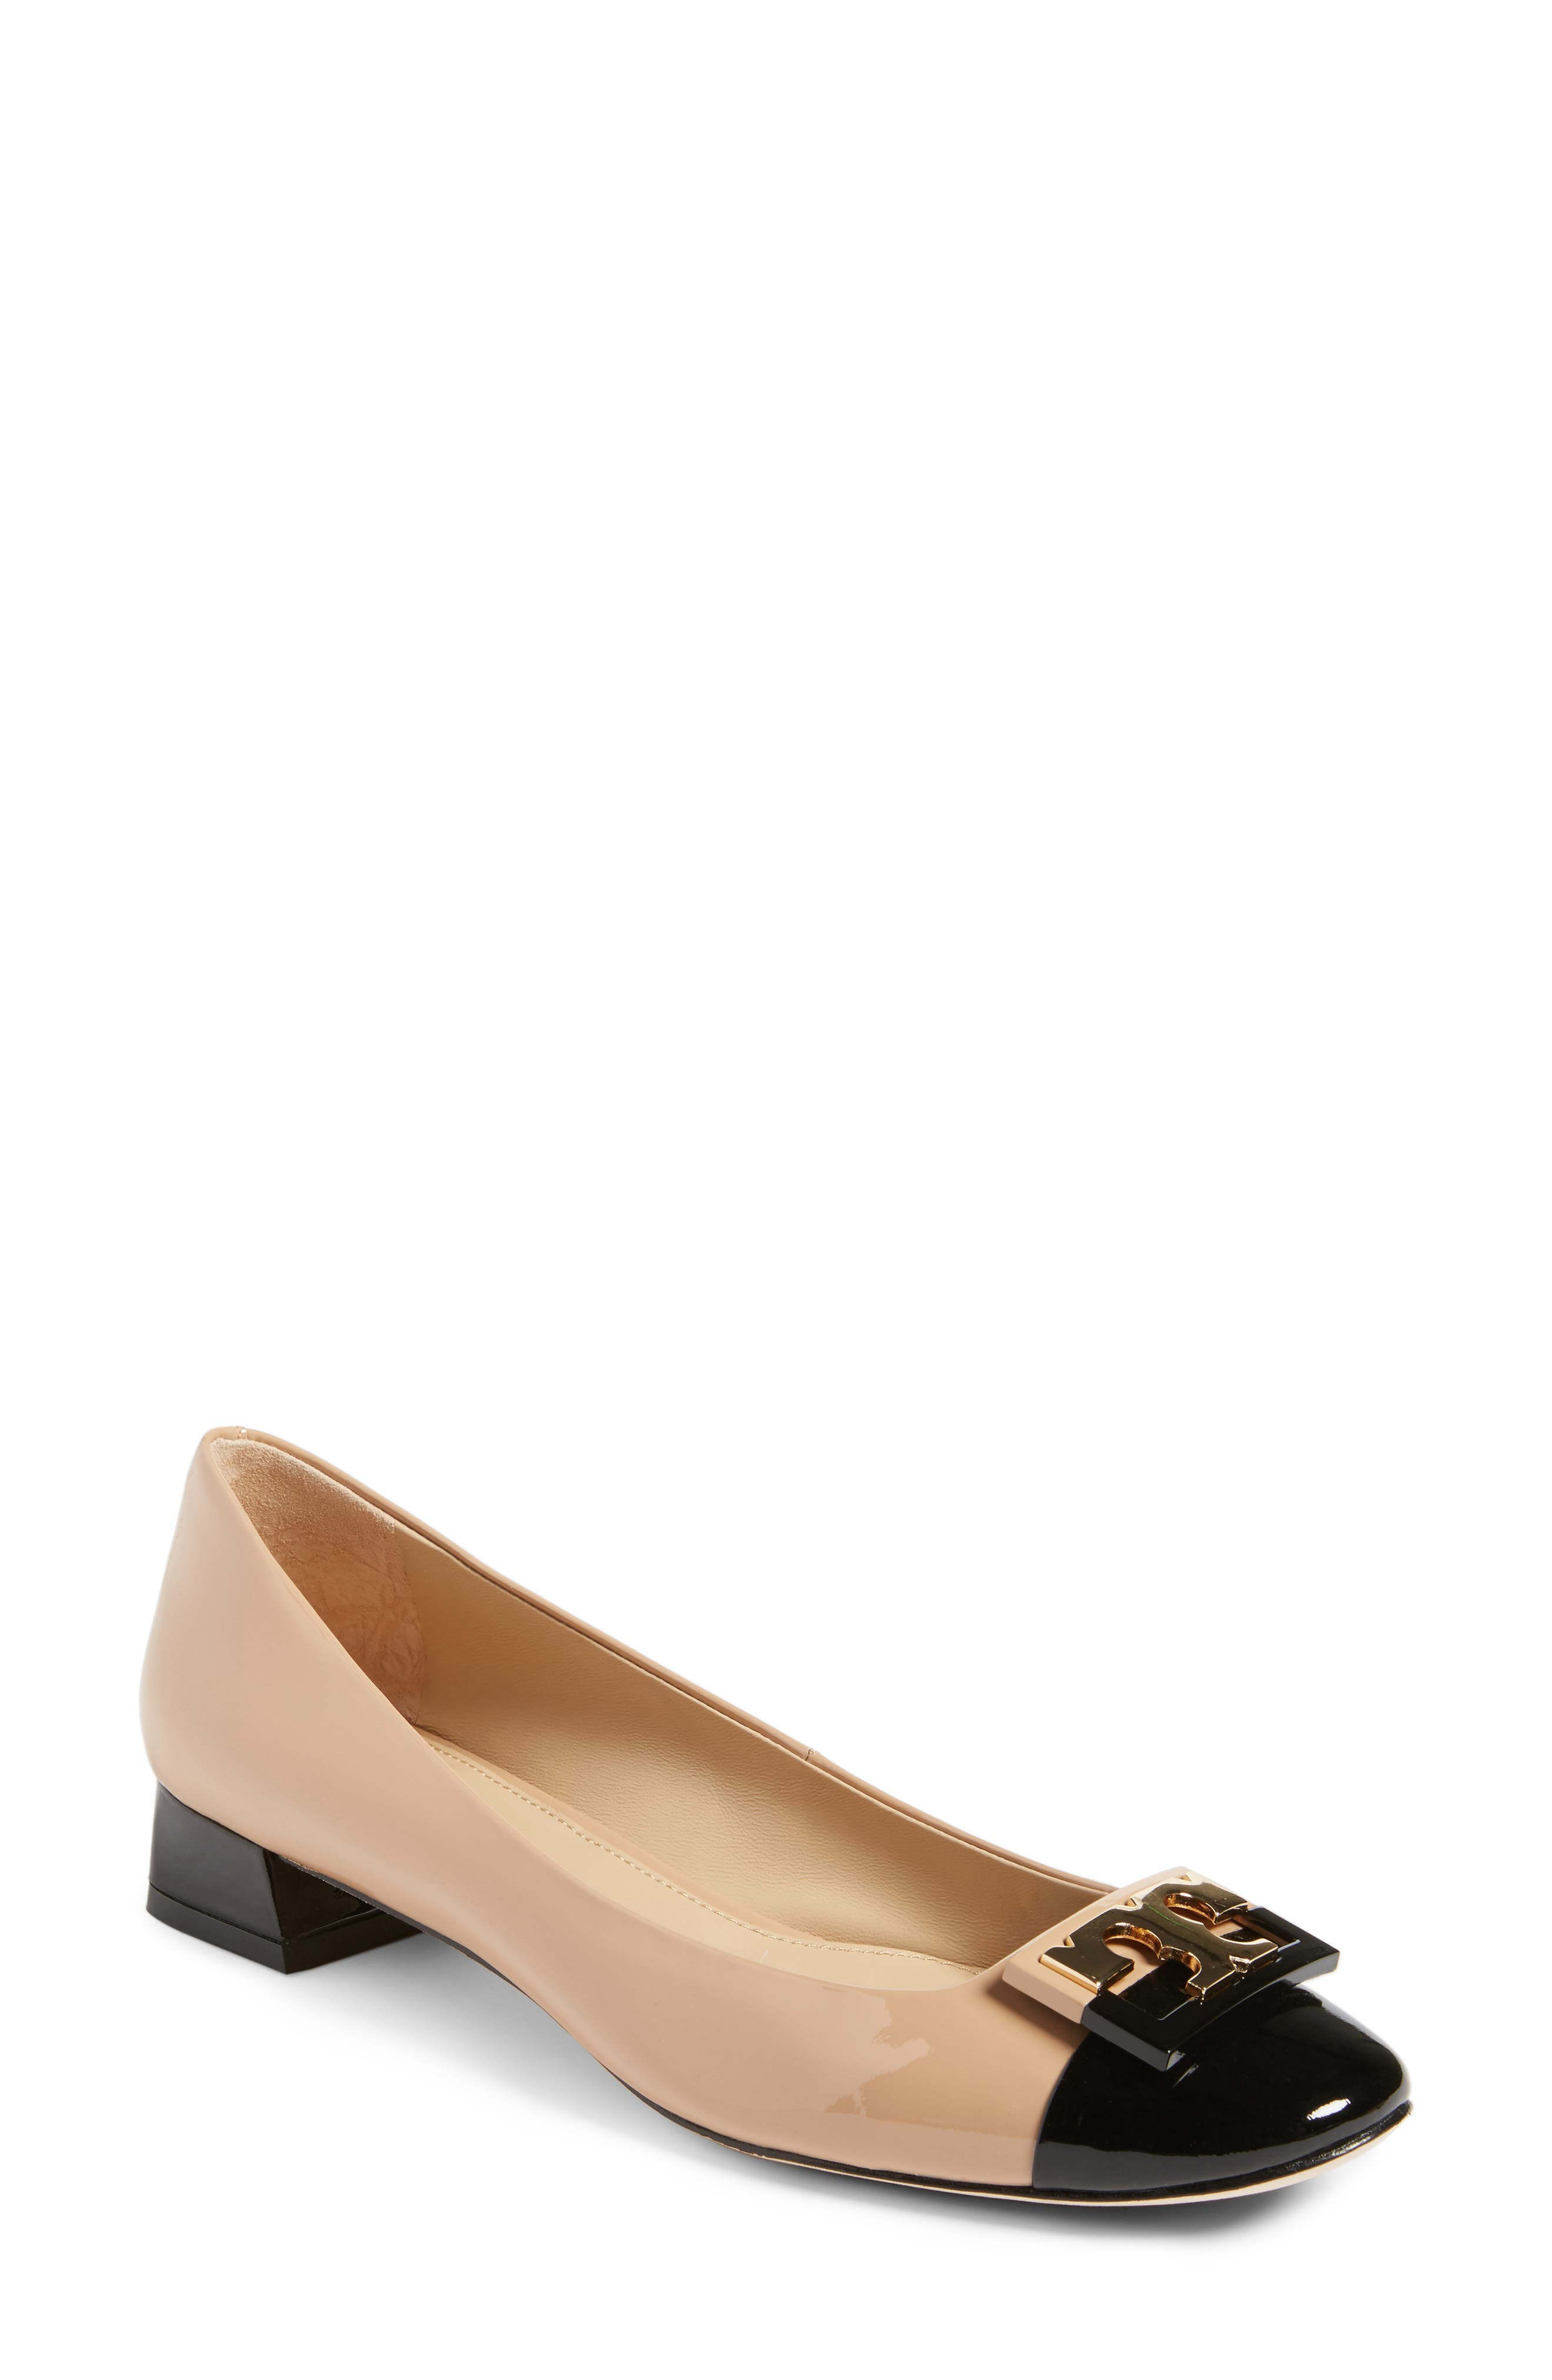 Gigi Pump,                             Main thumbnail 1, color,                             Tory Beige/ Black